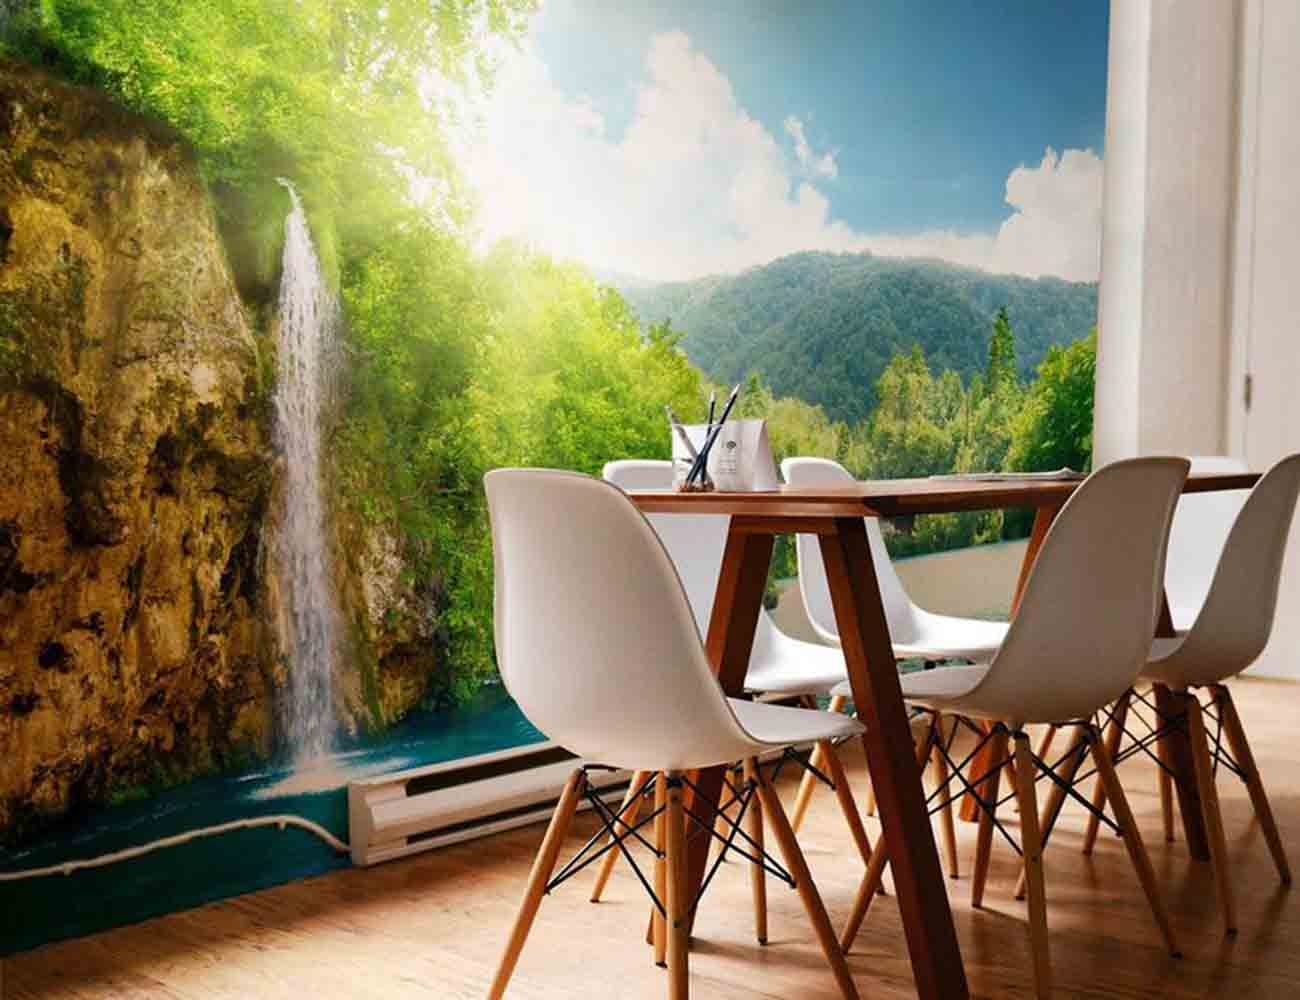 Plitvice lakes wall mural by eazywallz gadget flow for Cd mural wall display